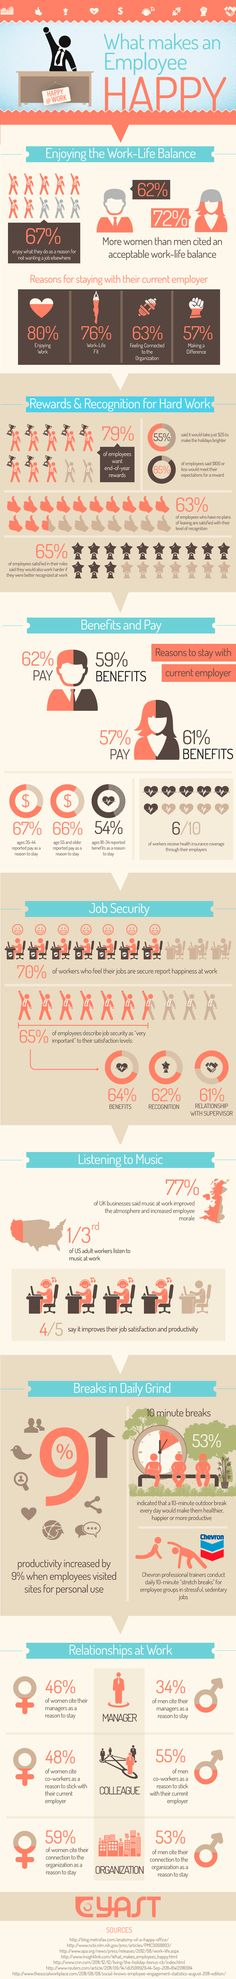 What Makes Employees Really Happy [Infographic]